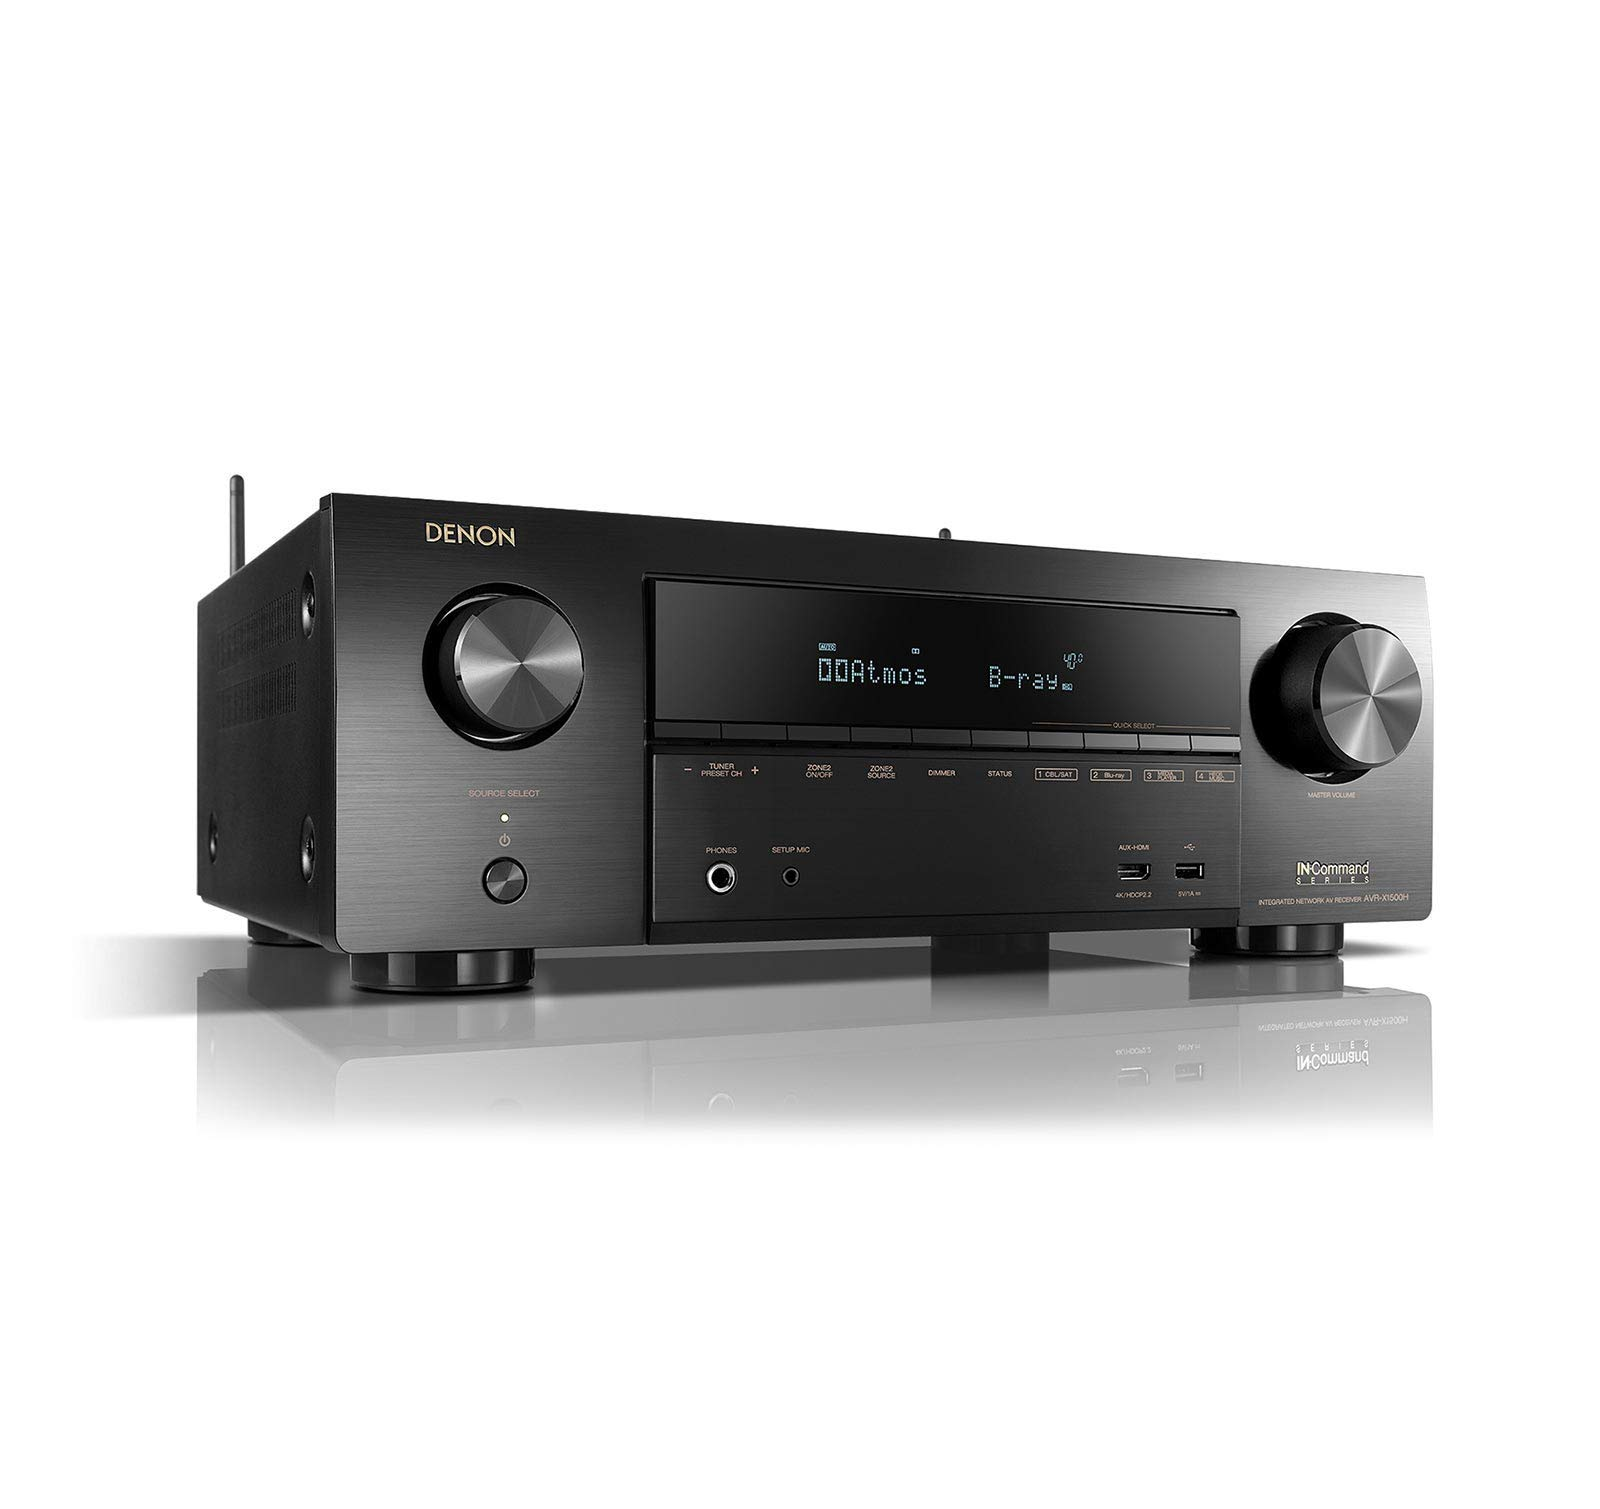 Denon AVR-X1500 Receiver 4K Ultra HD Video Home Theater Dolby Surround Sound (Renewed) by Denon